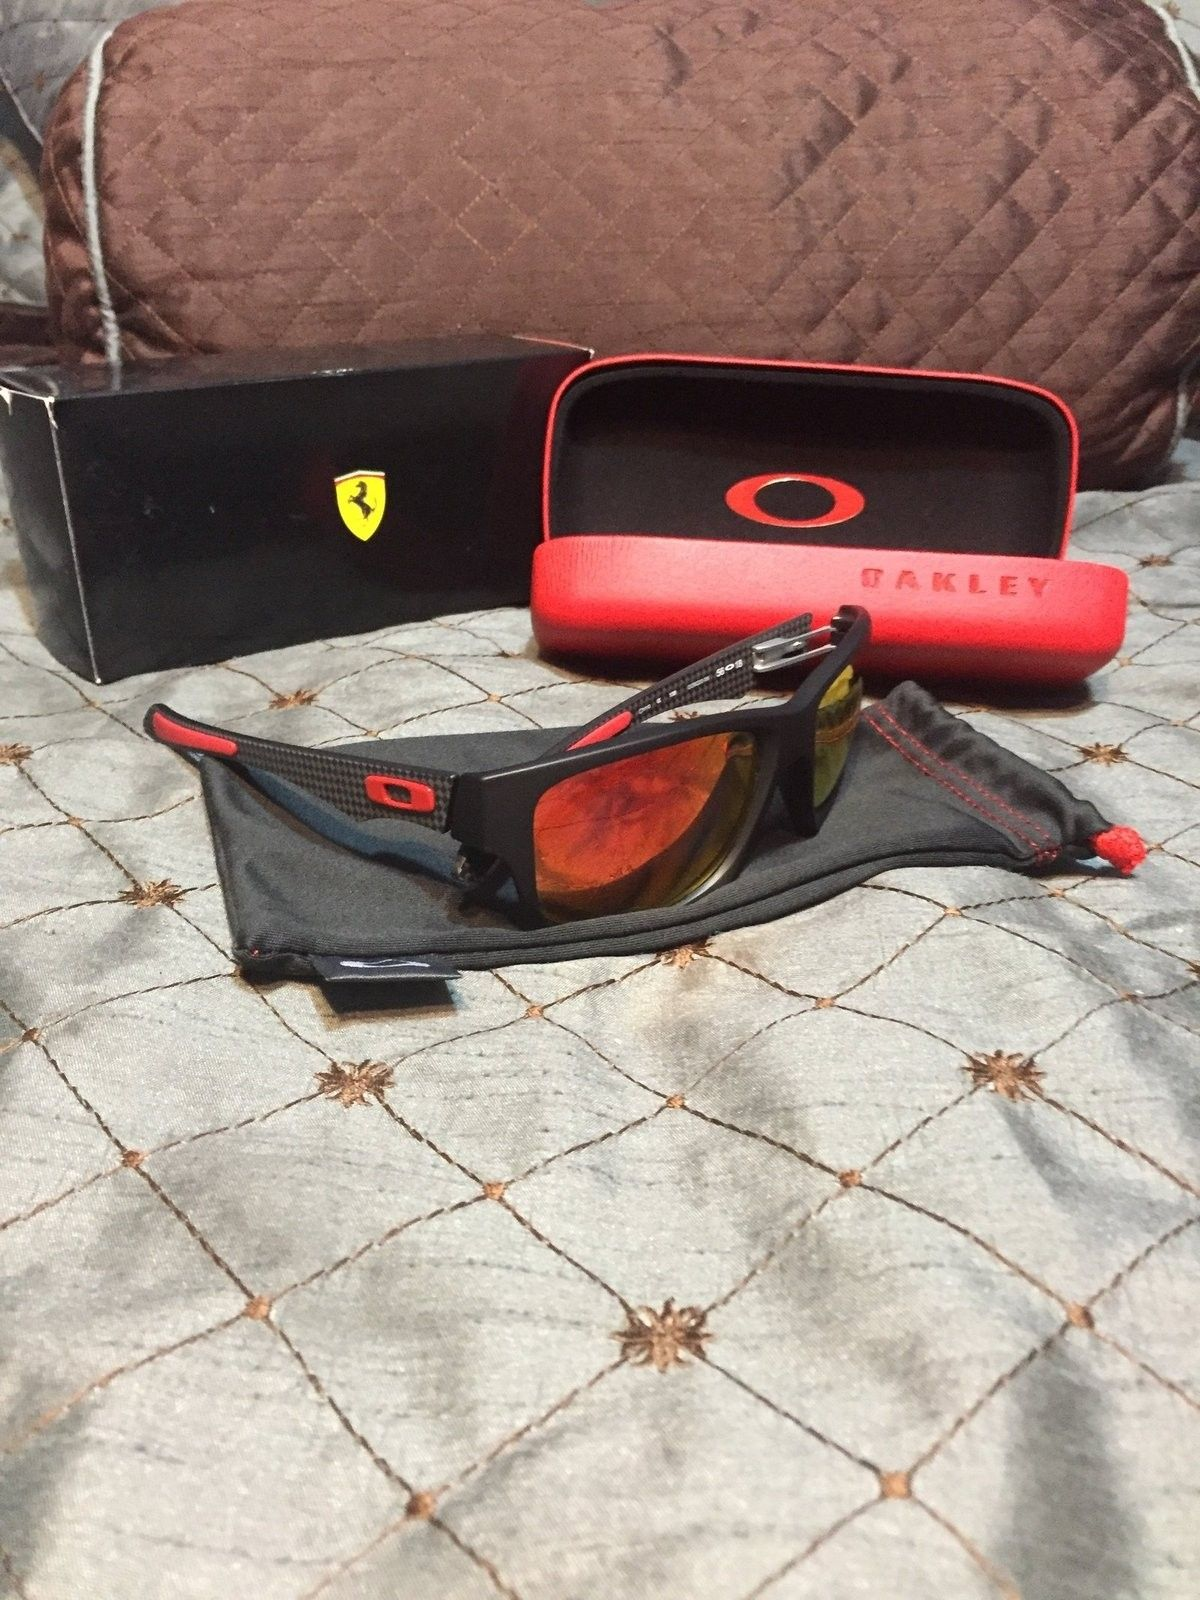 Ferrari Jupiter Carbon New Price $175 - image.jpeg